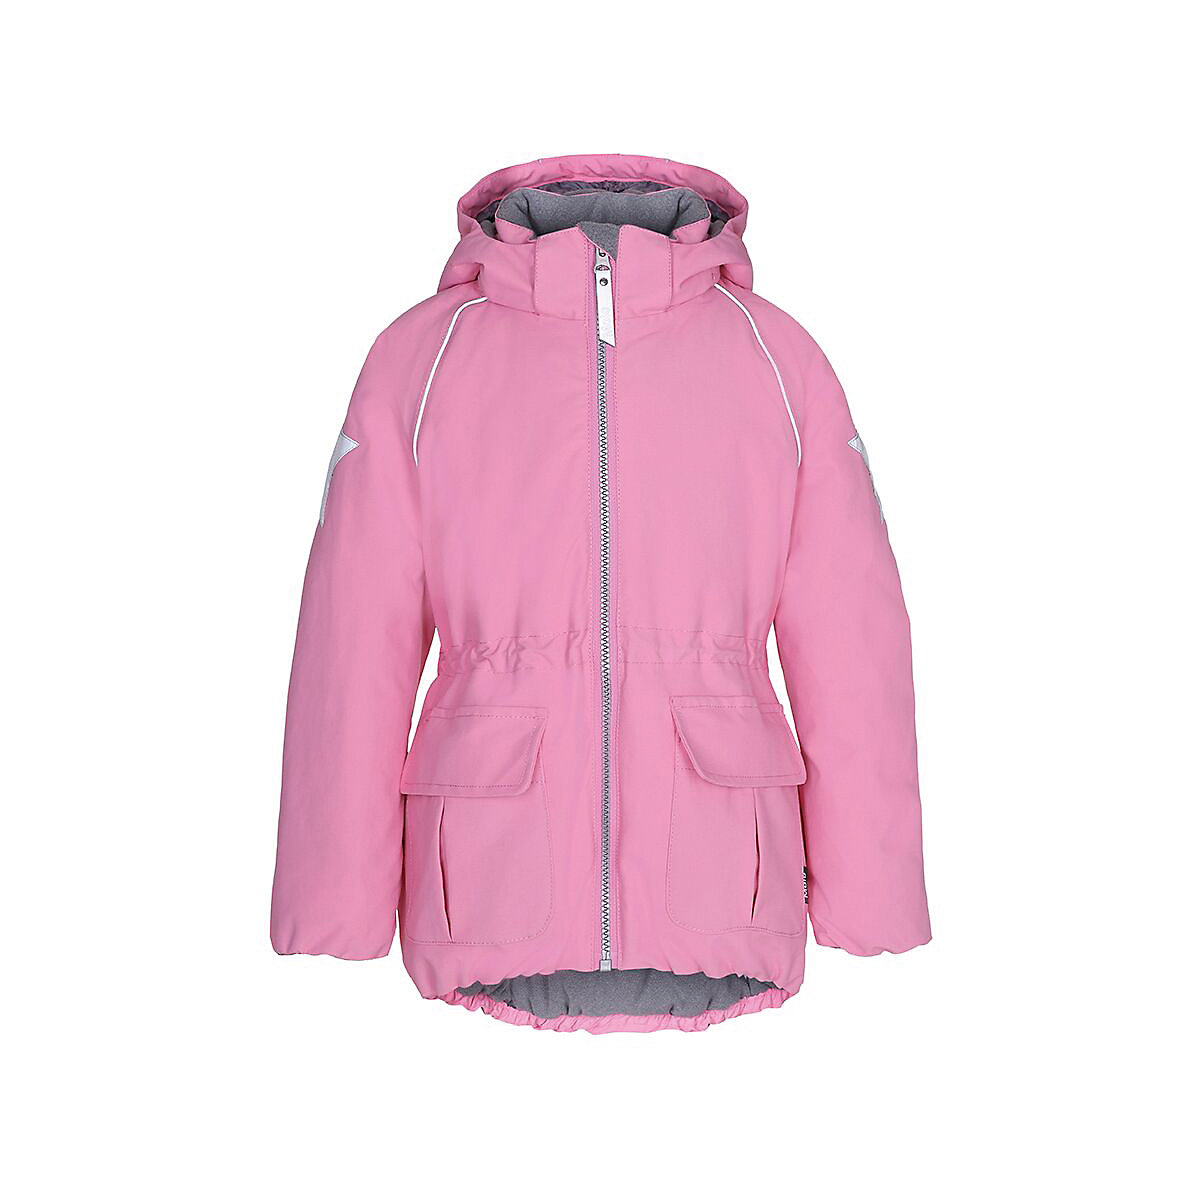 Jackets & Coats MOLO for girls 9170681 Jacket Coat Denim Cardigan Warm Children clothes Kids new winter cute rabbit hooded girls coat top autumn warm kids jacket outerwear children clothing baby girl coats